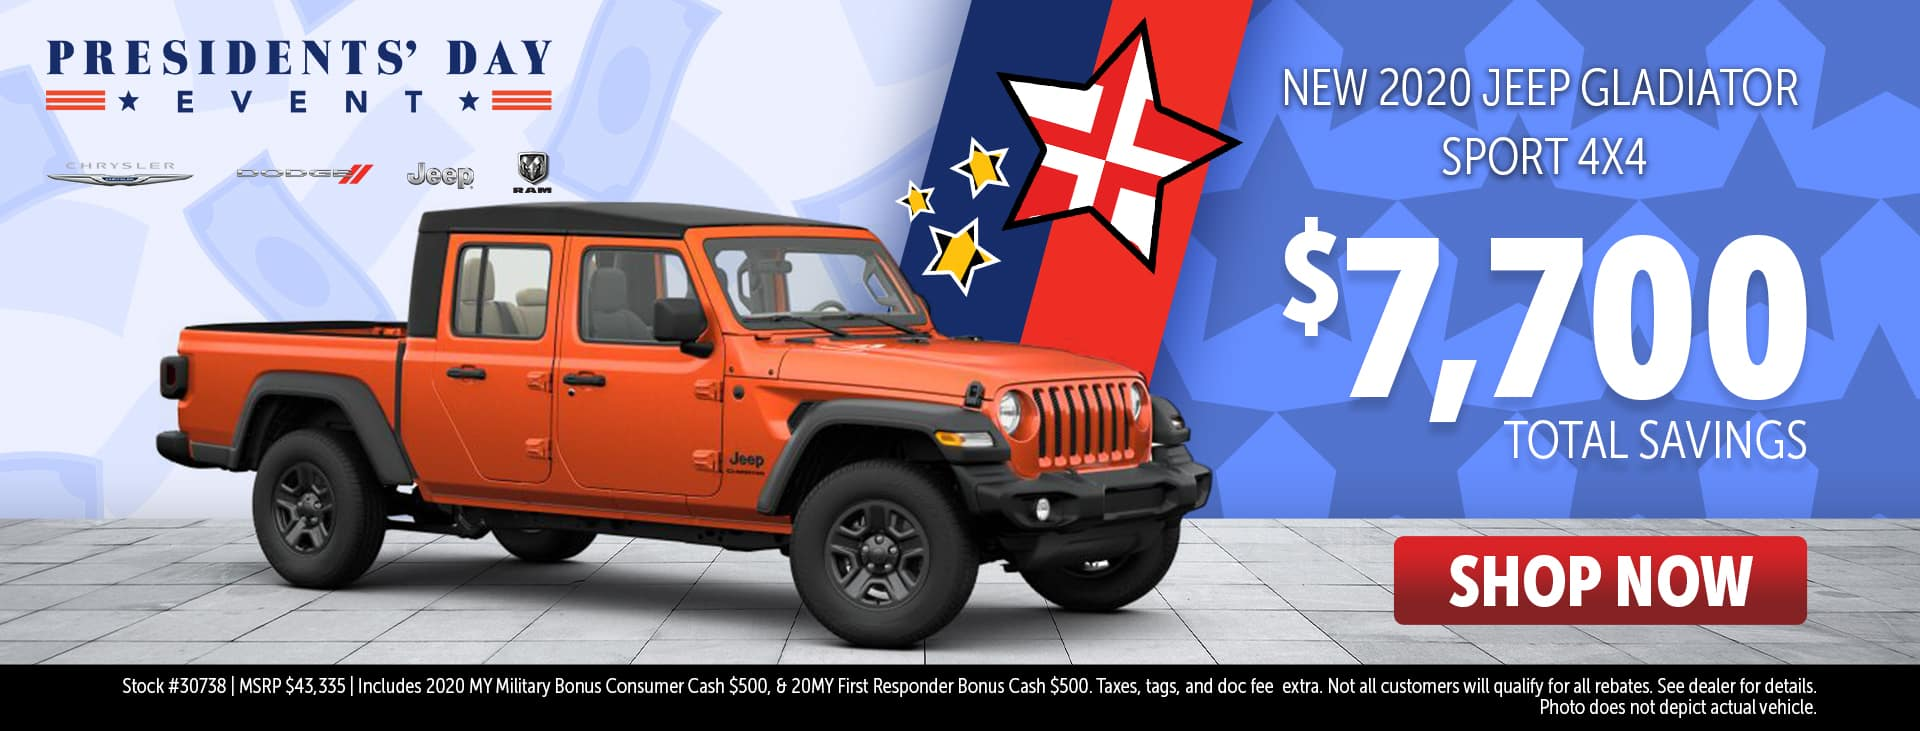 Presidents' Day Event Price for 2020 Jeep Gladiator